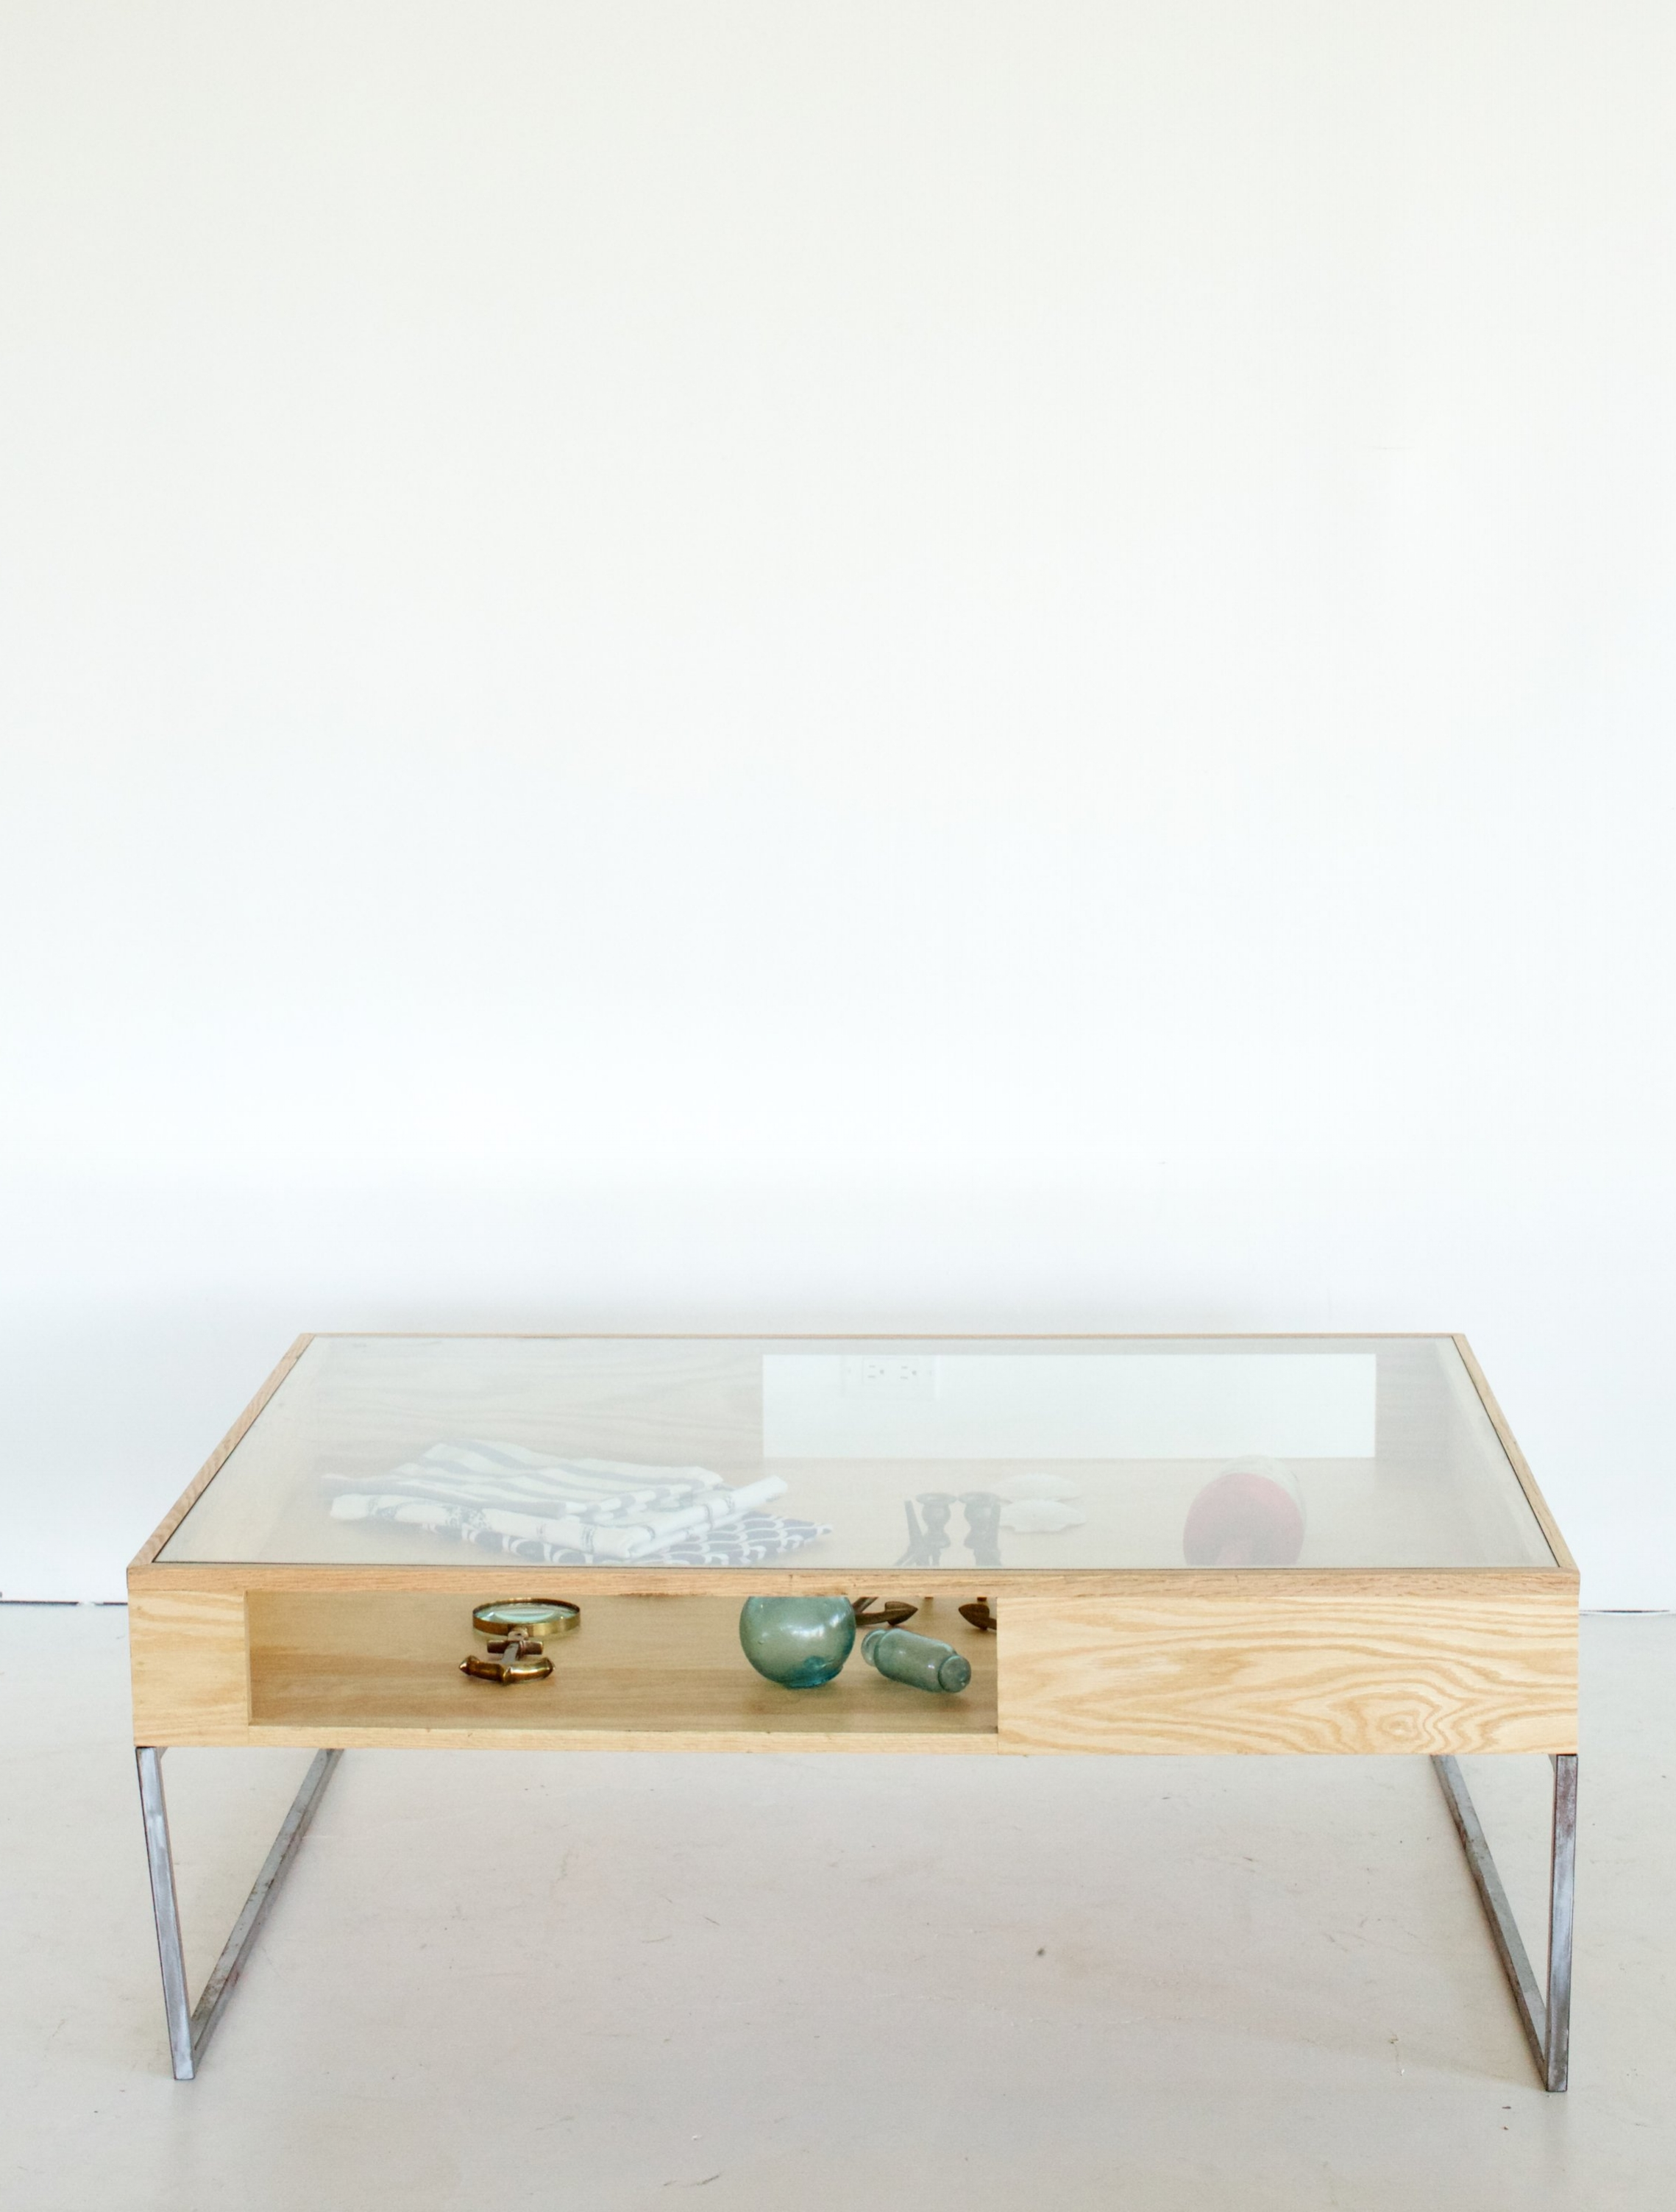 shadow box coffee tables signature boutique event rentals maui hawaii